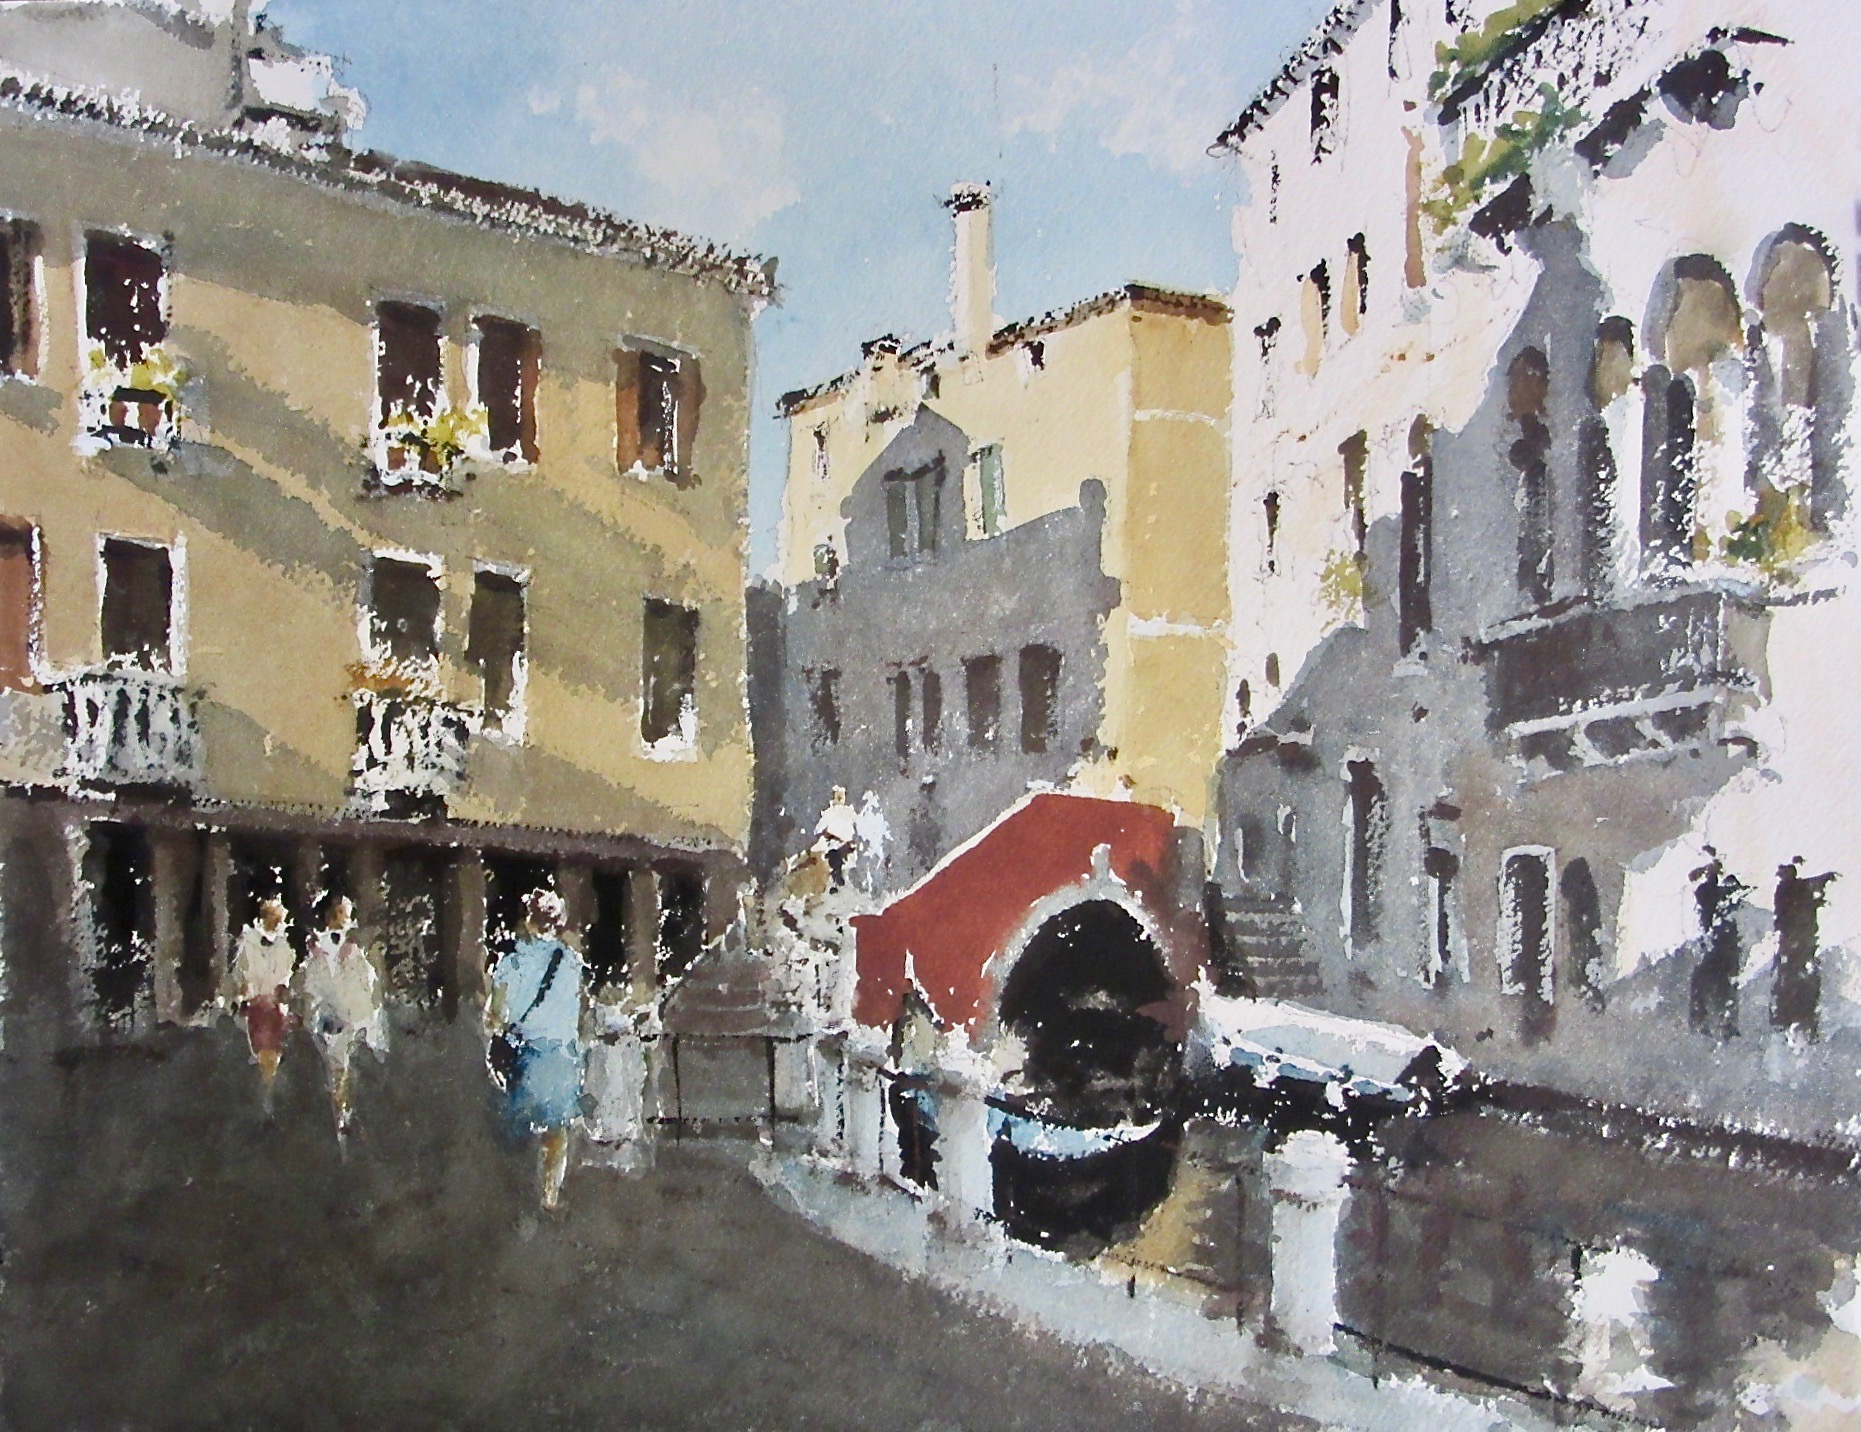 Quiet Canal Venice: 11 x 15.5 in: £750